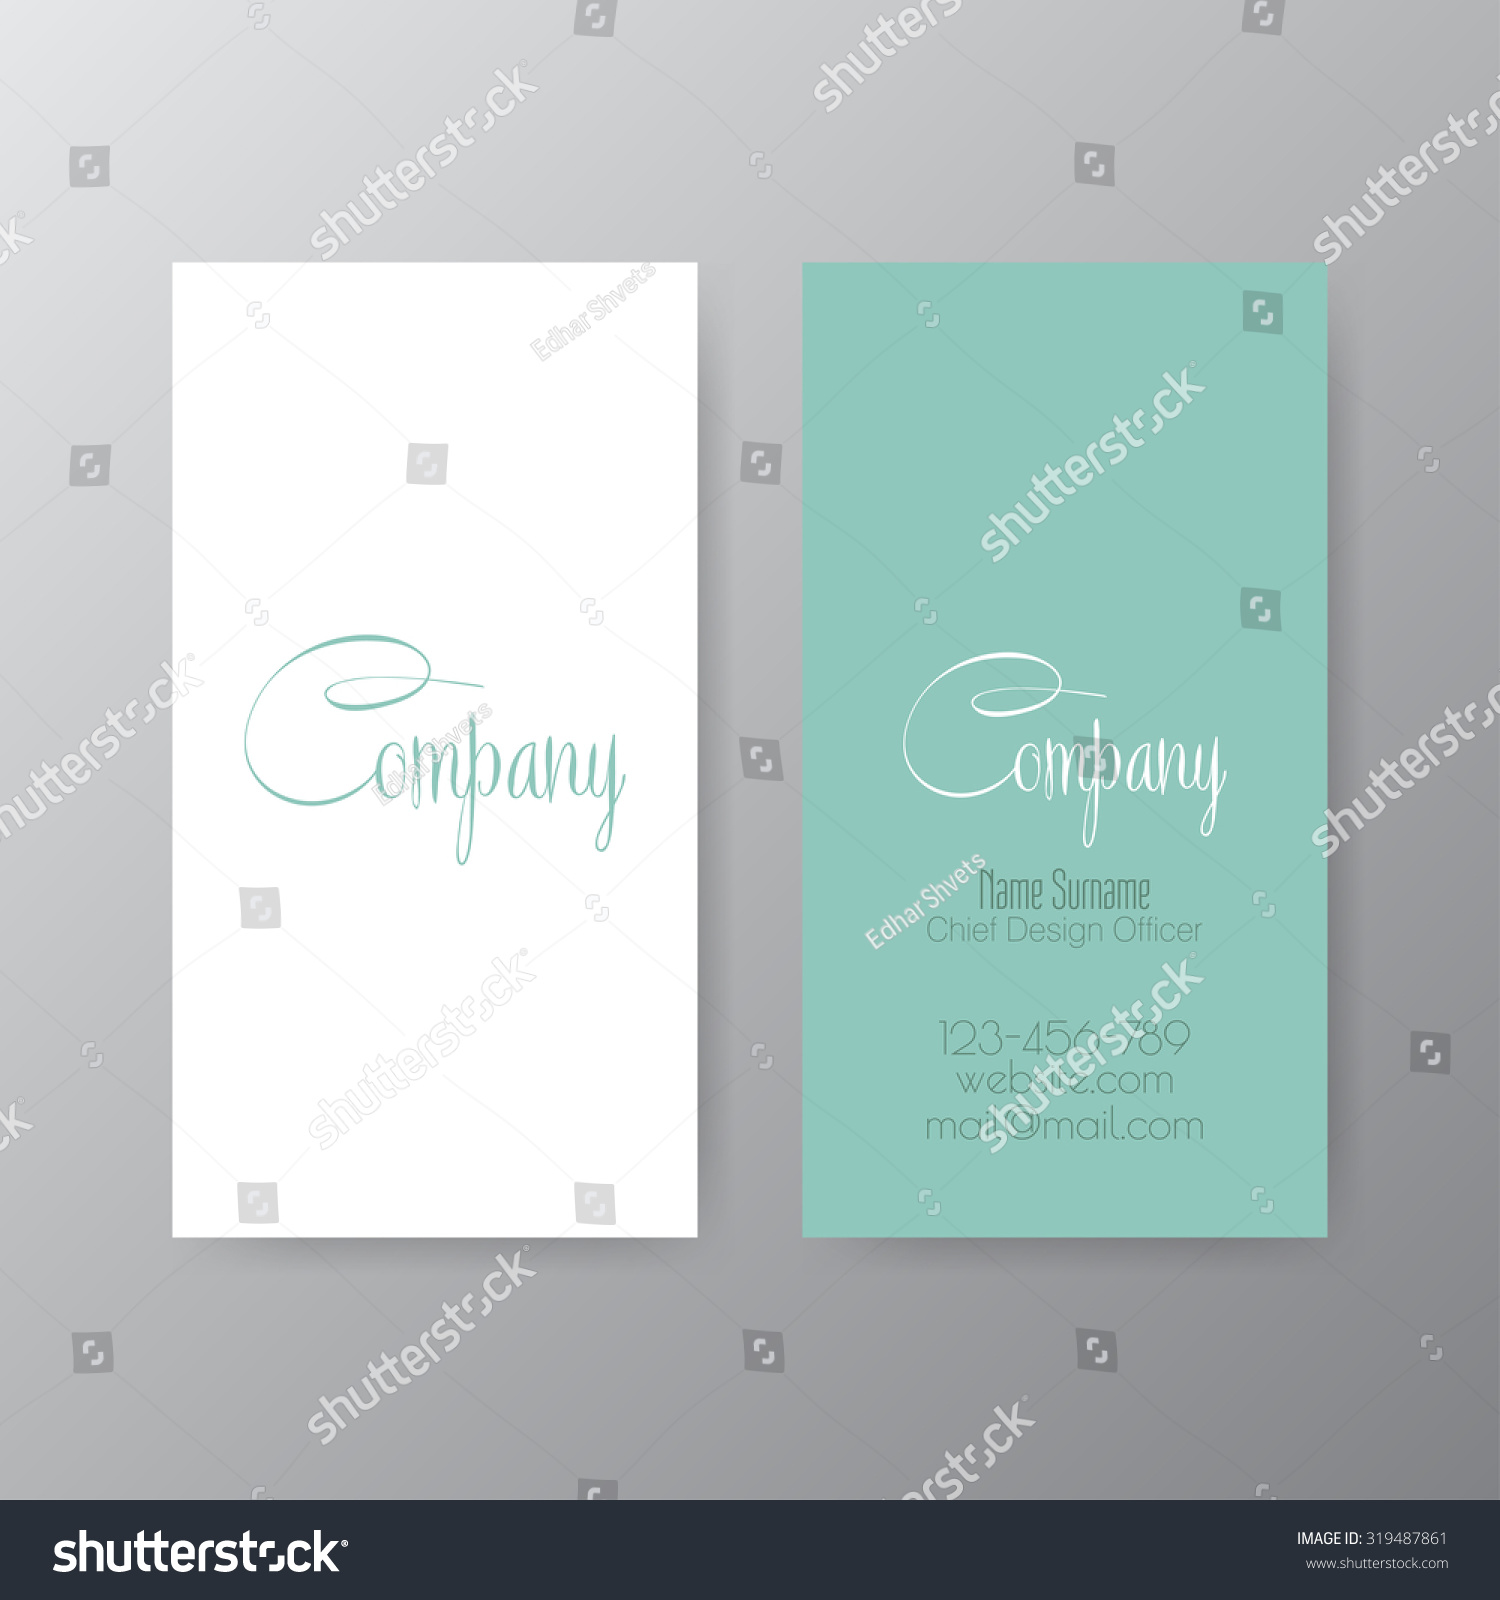 Editable business card set 85 x stock vector 319487861 shutterstock editable business card set 85 x 55 mm stylish professional and designer business card reheart Choice Image